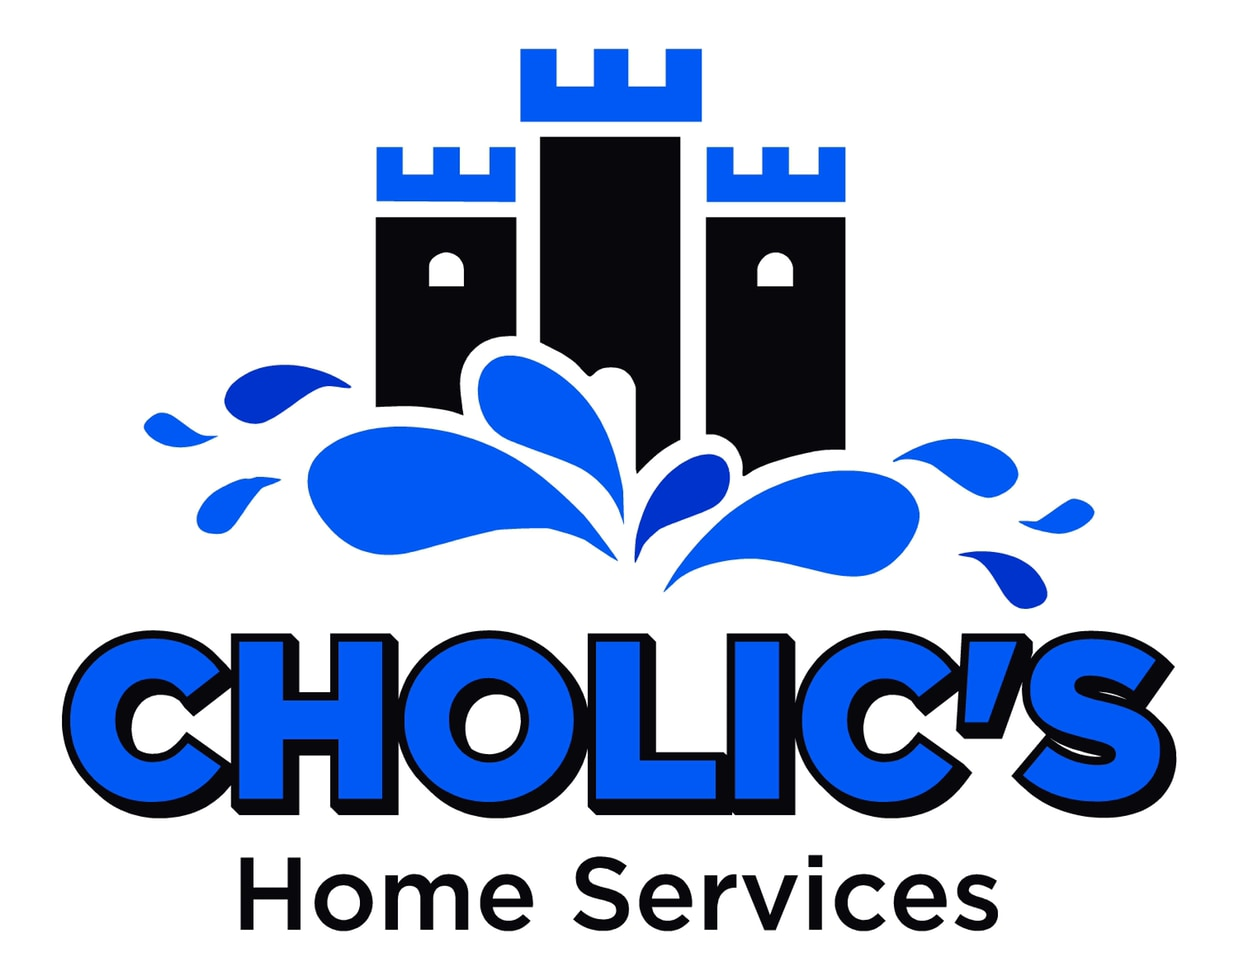 Cholic's Home Services